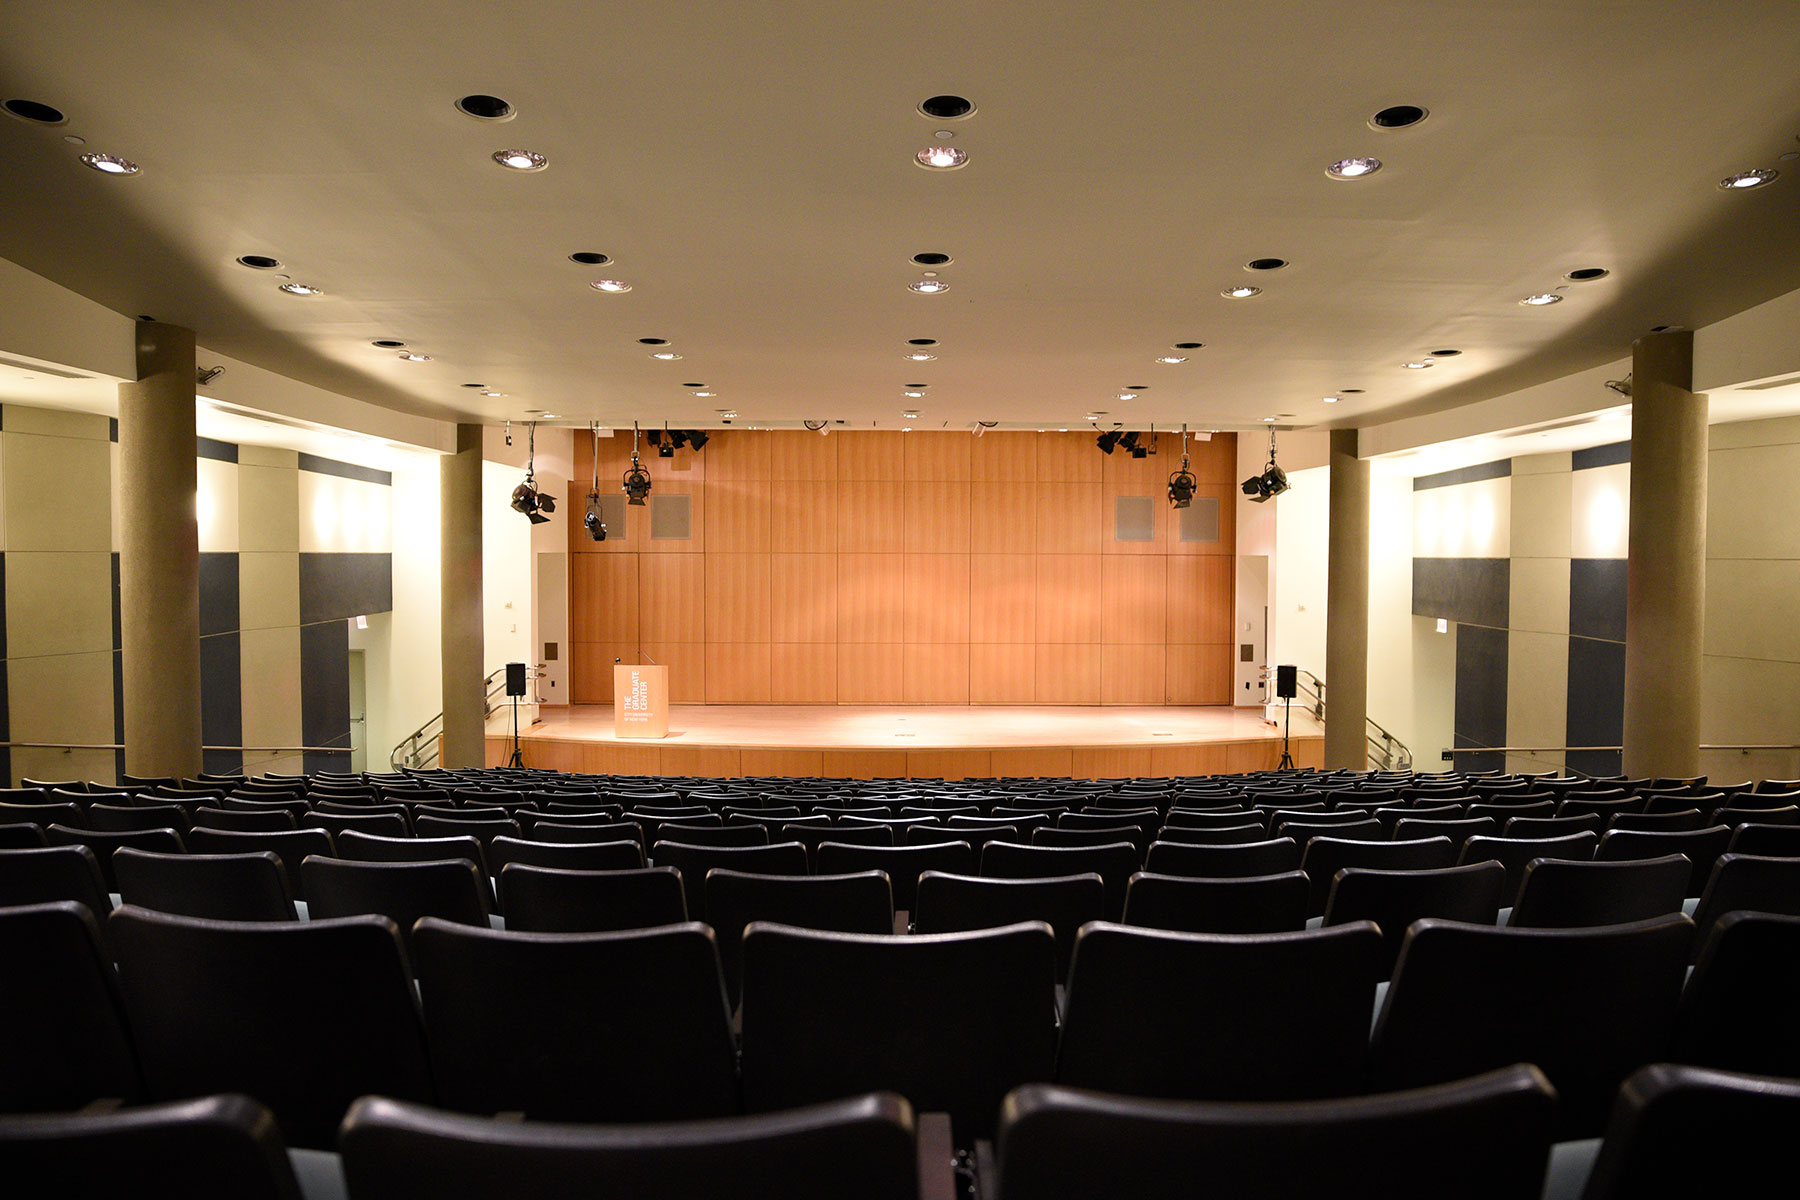 Proshansky Auditorium - Auditorium Rental in NYC. View from the back of the auditorium - stage and seating.